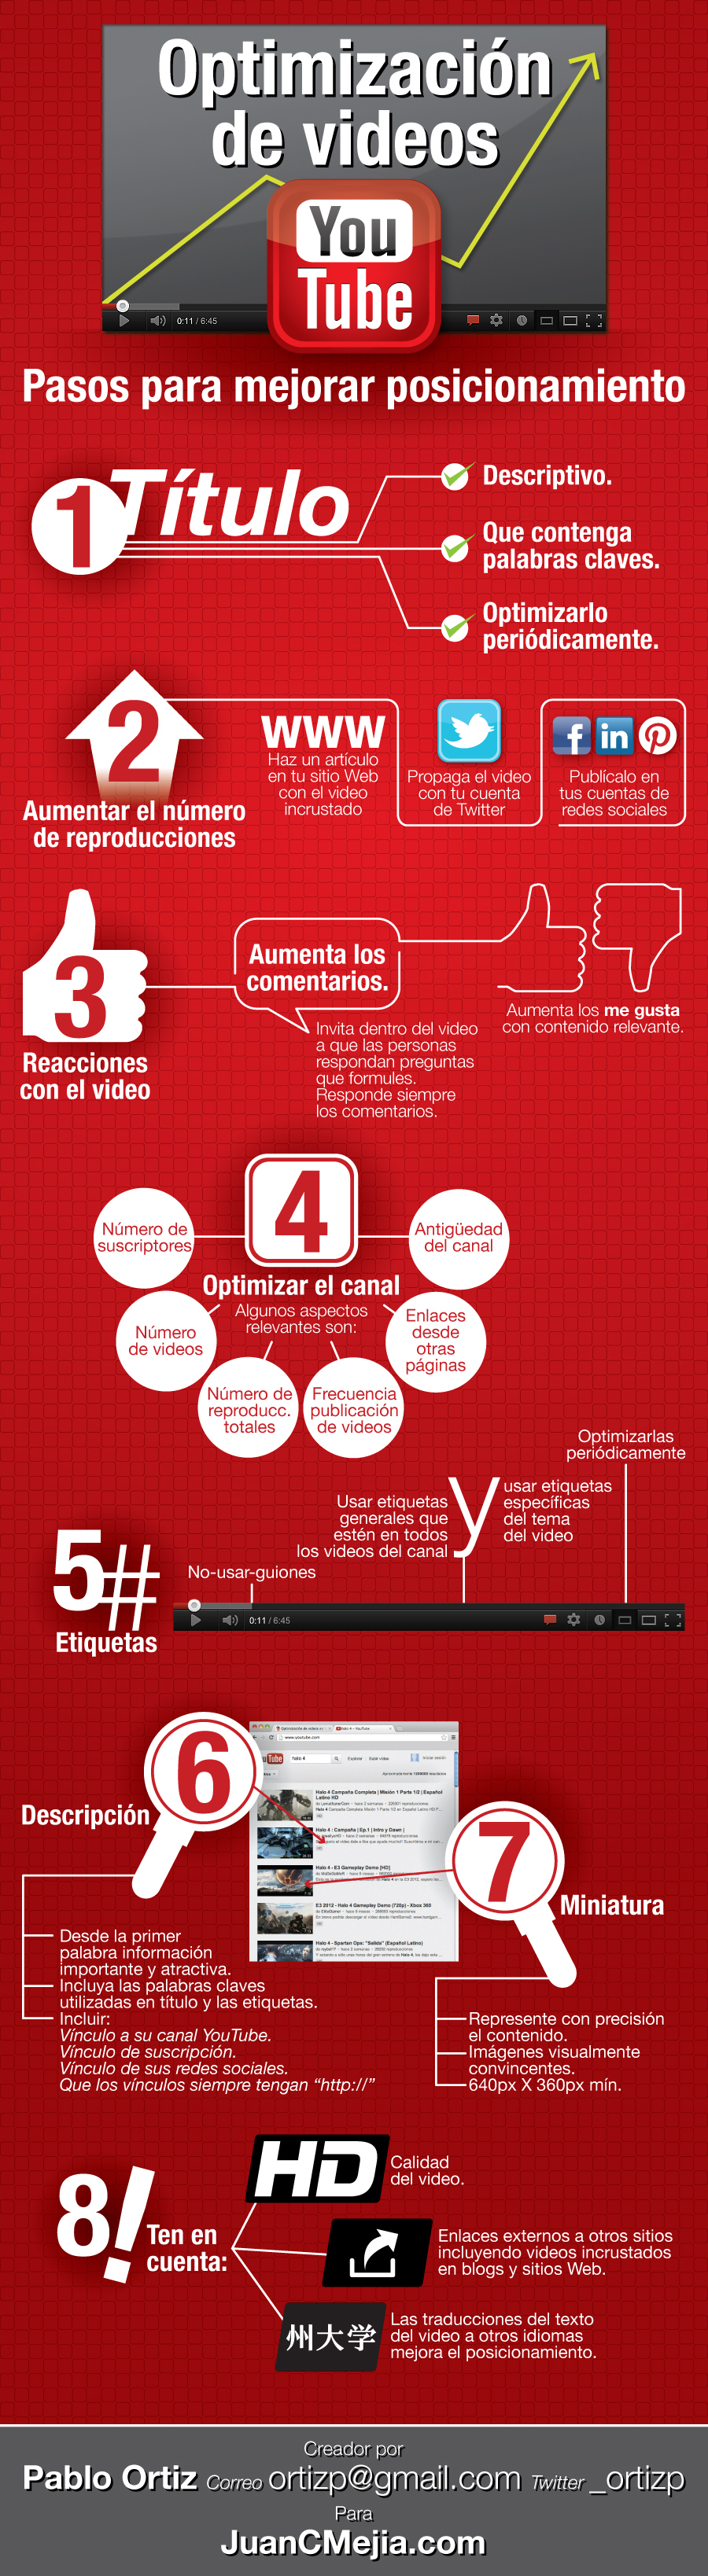 Optimizacion-de-Videos-en-Youtube